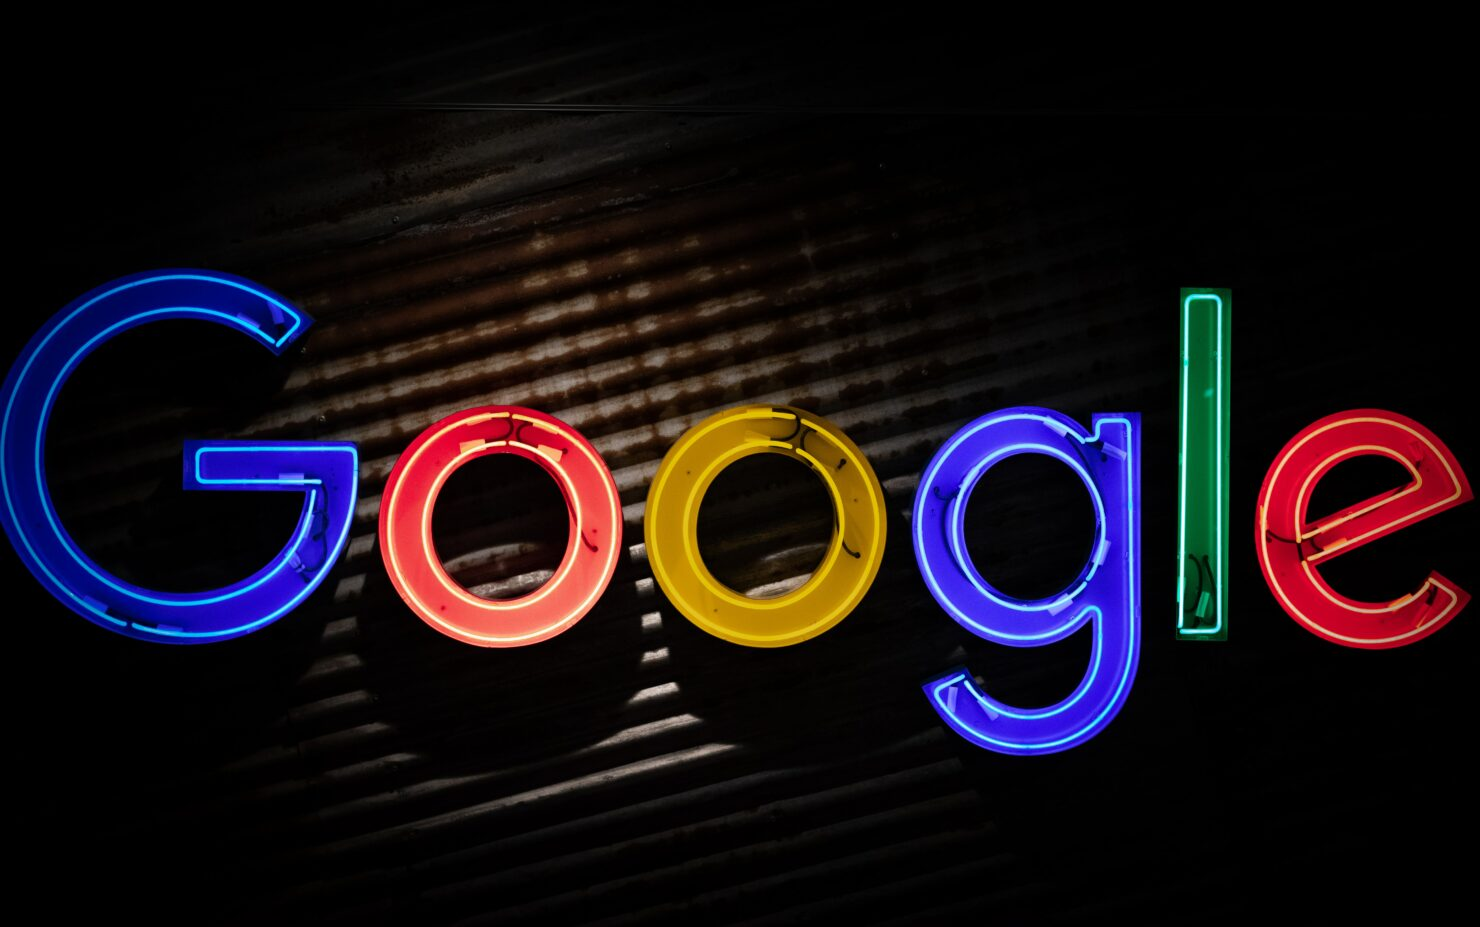 """Google is facing some trouble again as a new legal action brought by Liz Coll has hit Google in London. The legal action is seeking damages of up to £920 million ($1.3 billion) on behalf of around 19.5 million Android users in the country, which is a massive number and a massive amount, to say the least. Google Could Be Paying Almost $1.3 Billion to the Customers in the UK if the Lawsuit Succeeds According to the legal action, Google Play Store's 30% surcharge for digital purchases is unlawful and """"bears no relationship to the costs of providing the services"""" The case comes less than a month after the coalition of 37 state attorney generals filed a lawsuit against Google because of high Play Store app fees. Google is a gatekeeper to so many digital services, and it has a responsibility not to abuse that position and overcharge ordinary consumers. These hidden charges are unlawful, and Google's customers deserve compensation, and better treatment from Google in future. The lawsuit claims how Google is shutting down the competition to the Play Store by requiring it to be preinstalled on all Android devices, including the cheapest devices out there. It also """"Steers"""" users to its own payment processing system, which exacts a 30% surcharge on every purchase. This, according to the lawsuit, is not only generating massive revenue for Google but is also hitting the consumers' pockets directly. Additionally, the lawsuit also alleges that these practices violate section 18 of the UK Competition Act 1998 and Article 102 of the Treaty on the Functioning of the European Union. If the lawsuit is successful, Android users in the UK could receive compensation of around £47, and this applies to Any Android user who has made purchases of an app or other content within the app from the UK version of the Play Store using an Android phone or tablet will be eligible for the compensation. This is not the first time the search engine giant is facing a lawsuit over such practices. This has """